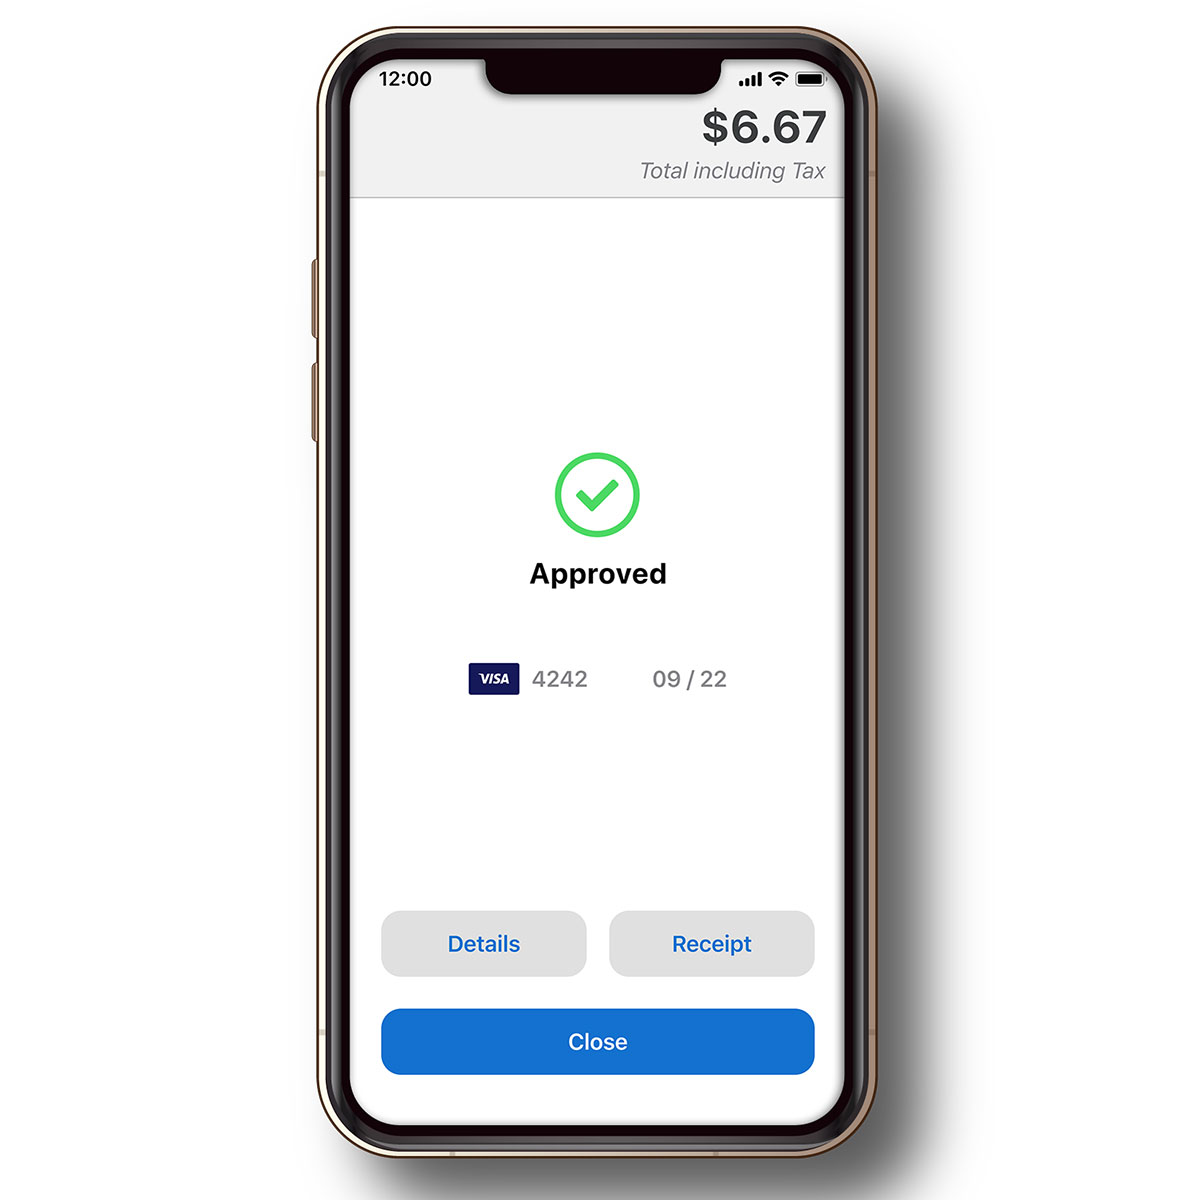 get paid faster with mobile payments